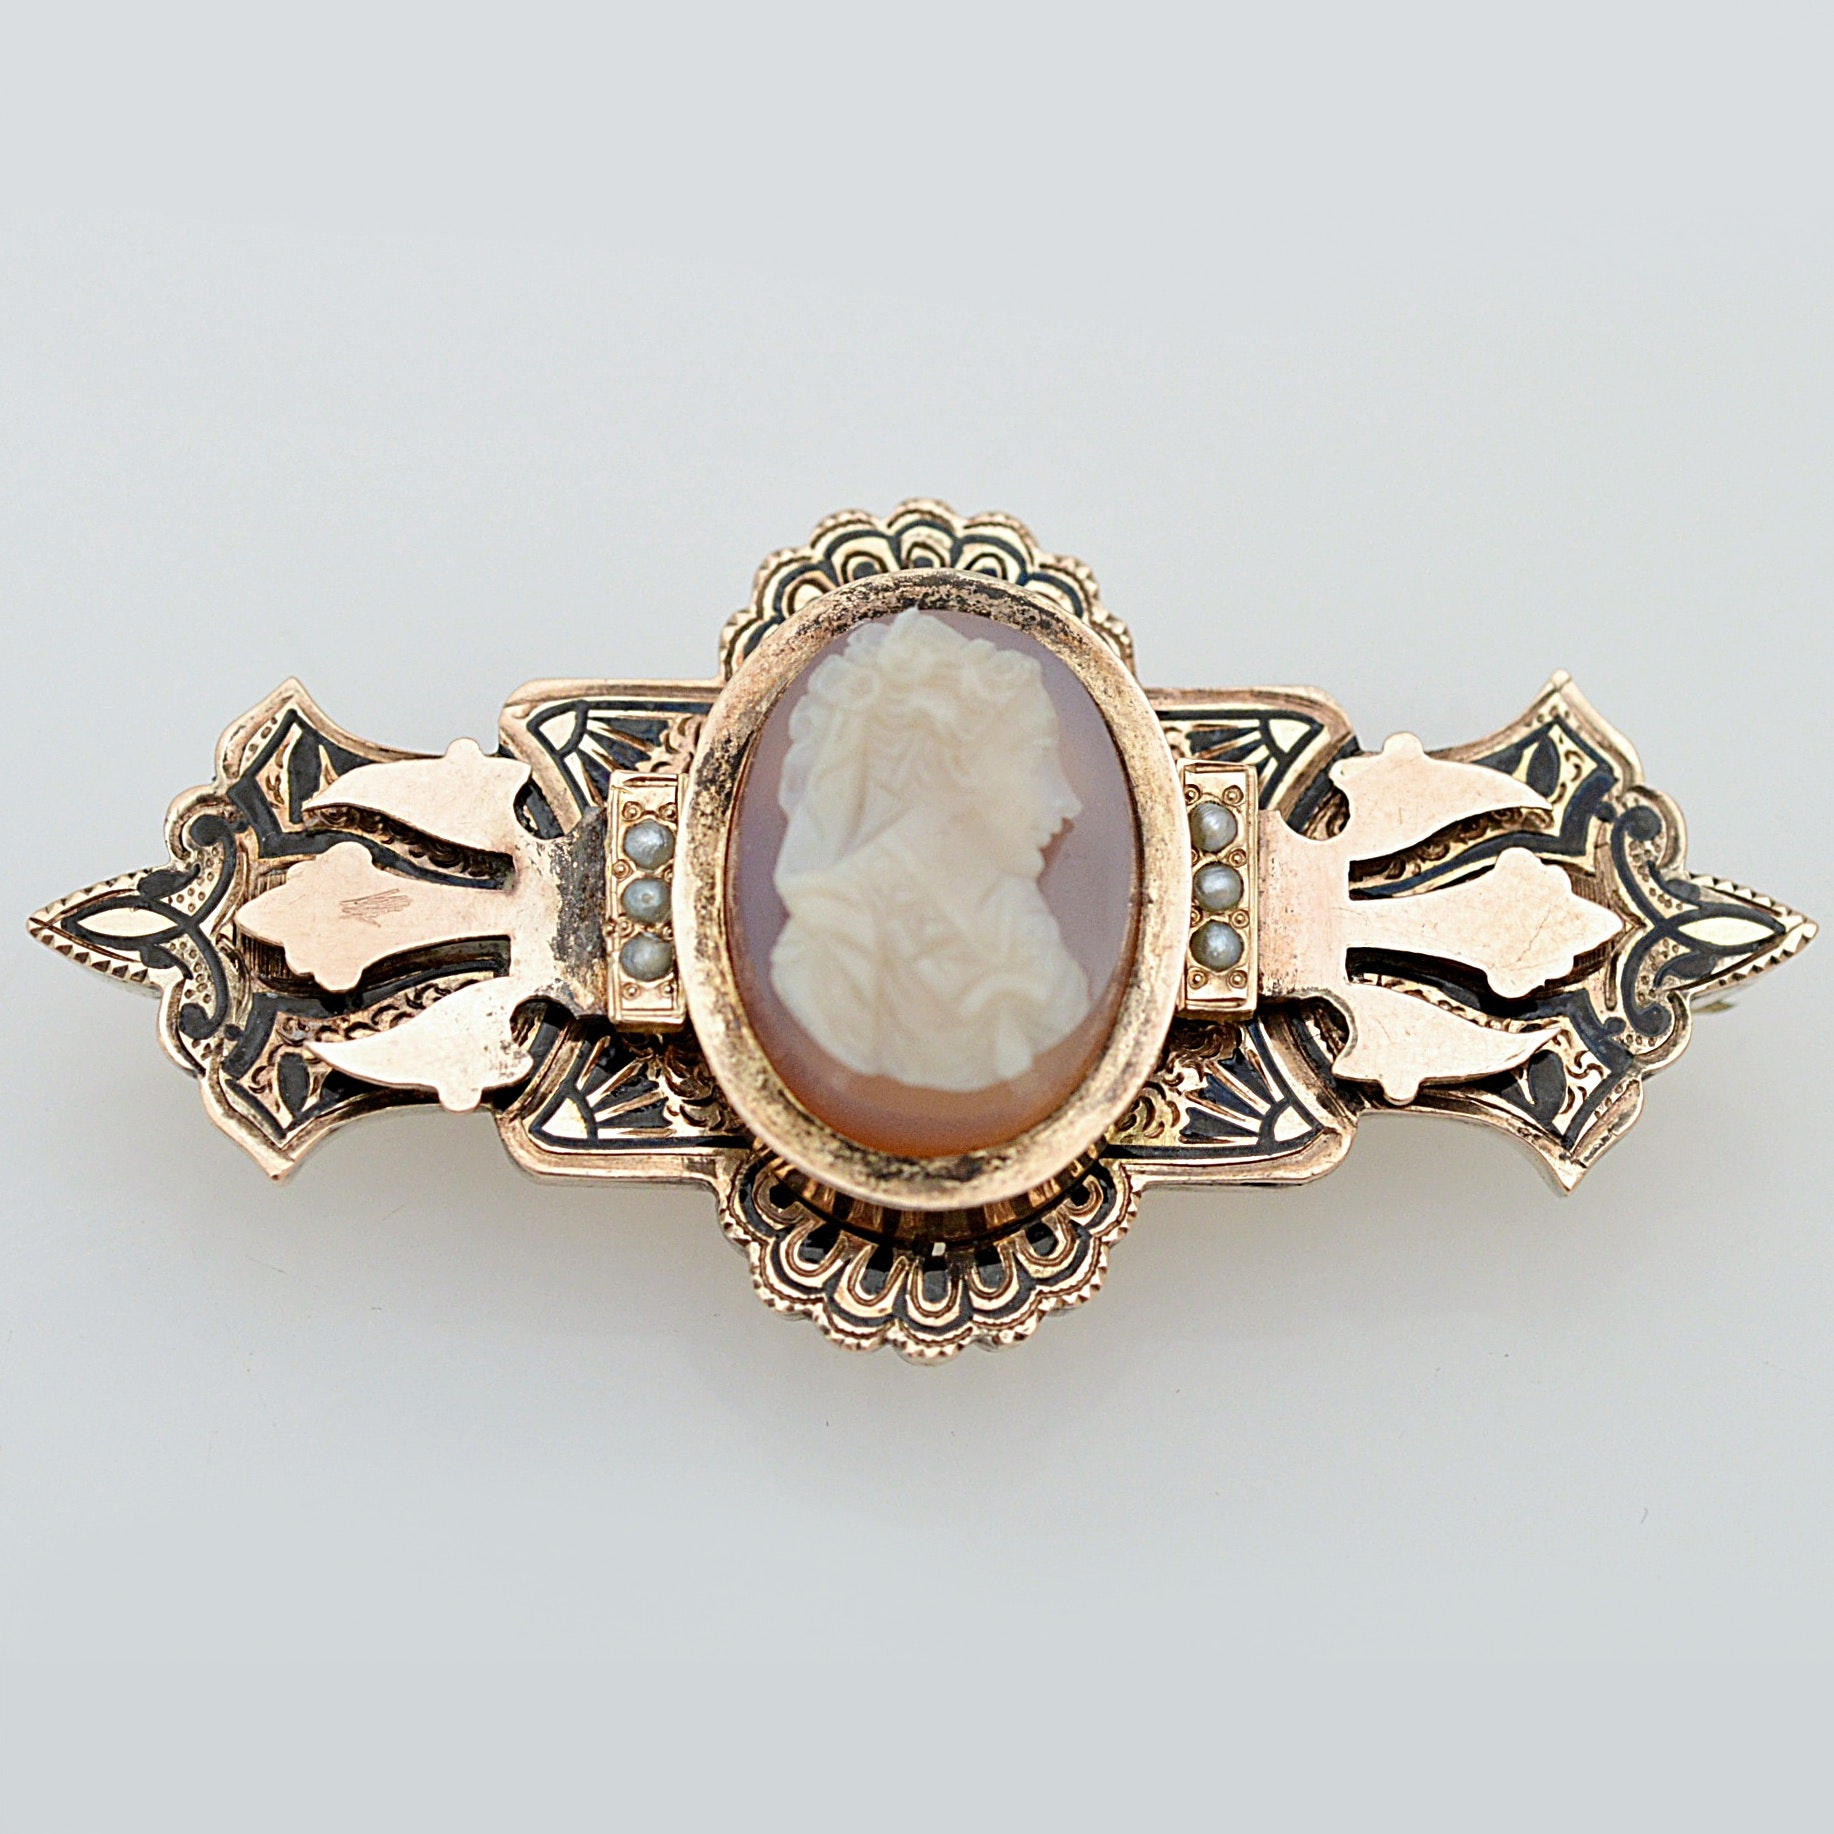 Victorian 10K Yellow Gold Agate Cameo Brooch with Seed Pearl Accents